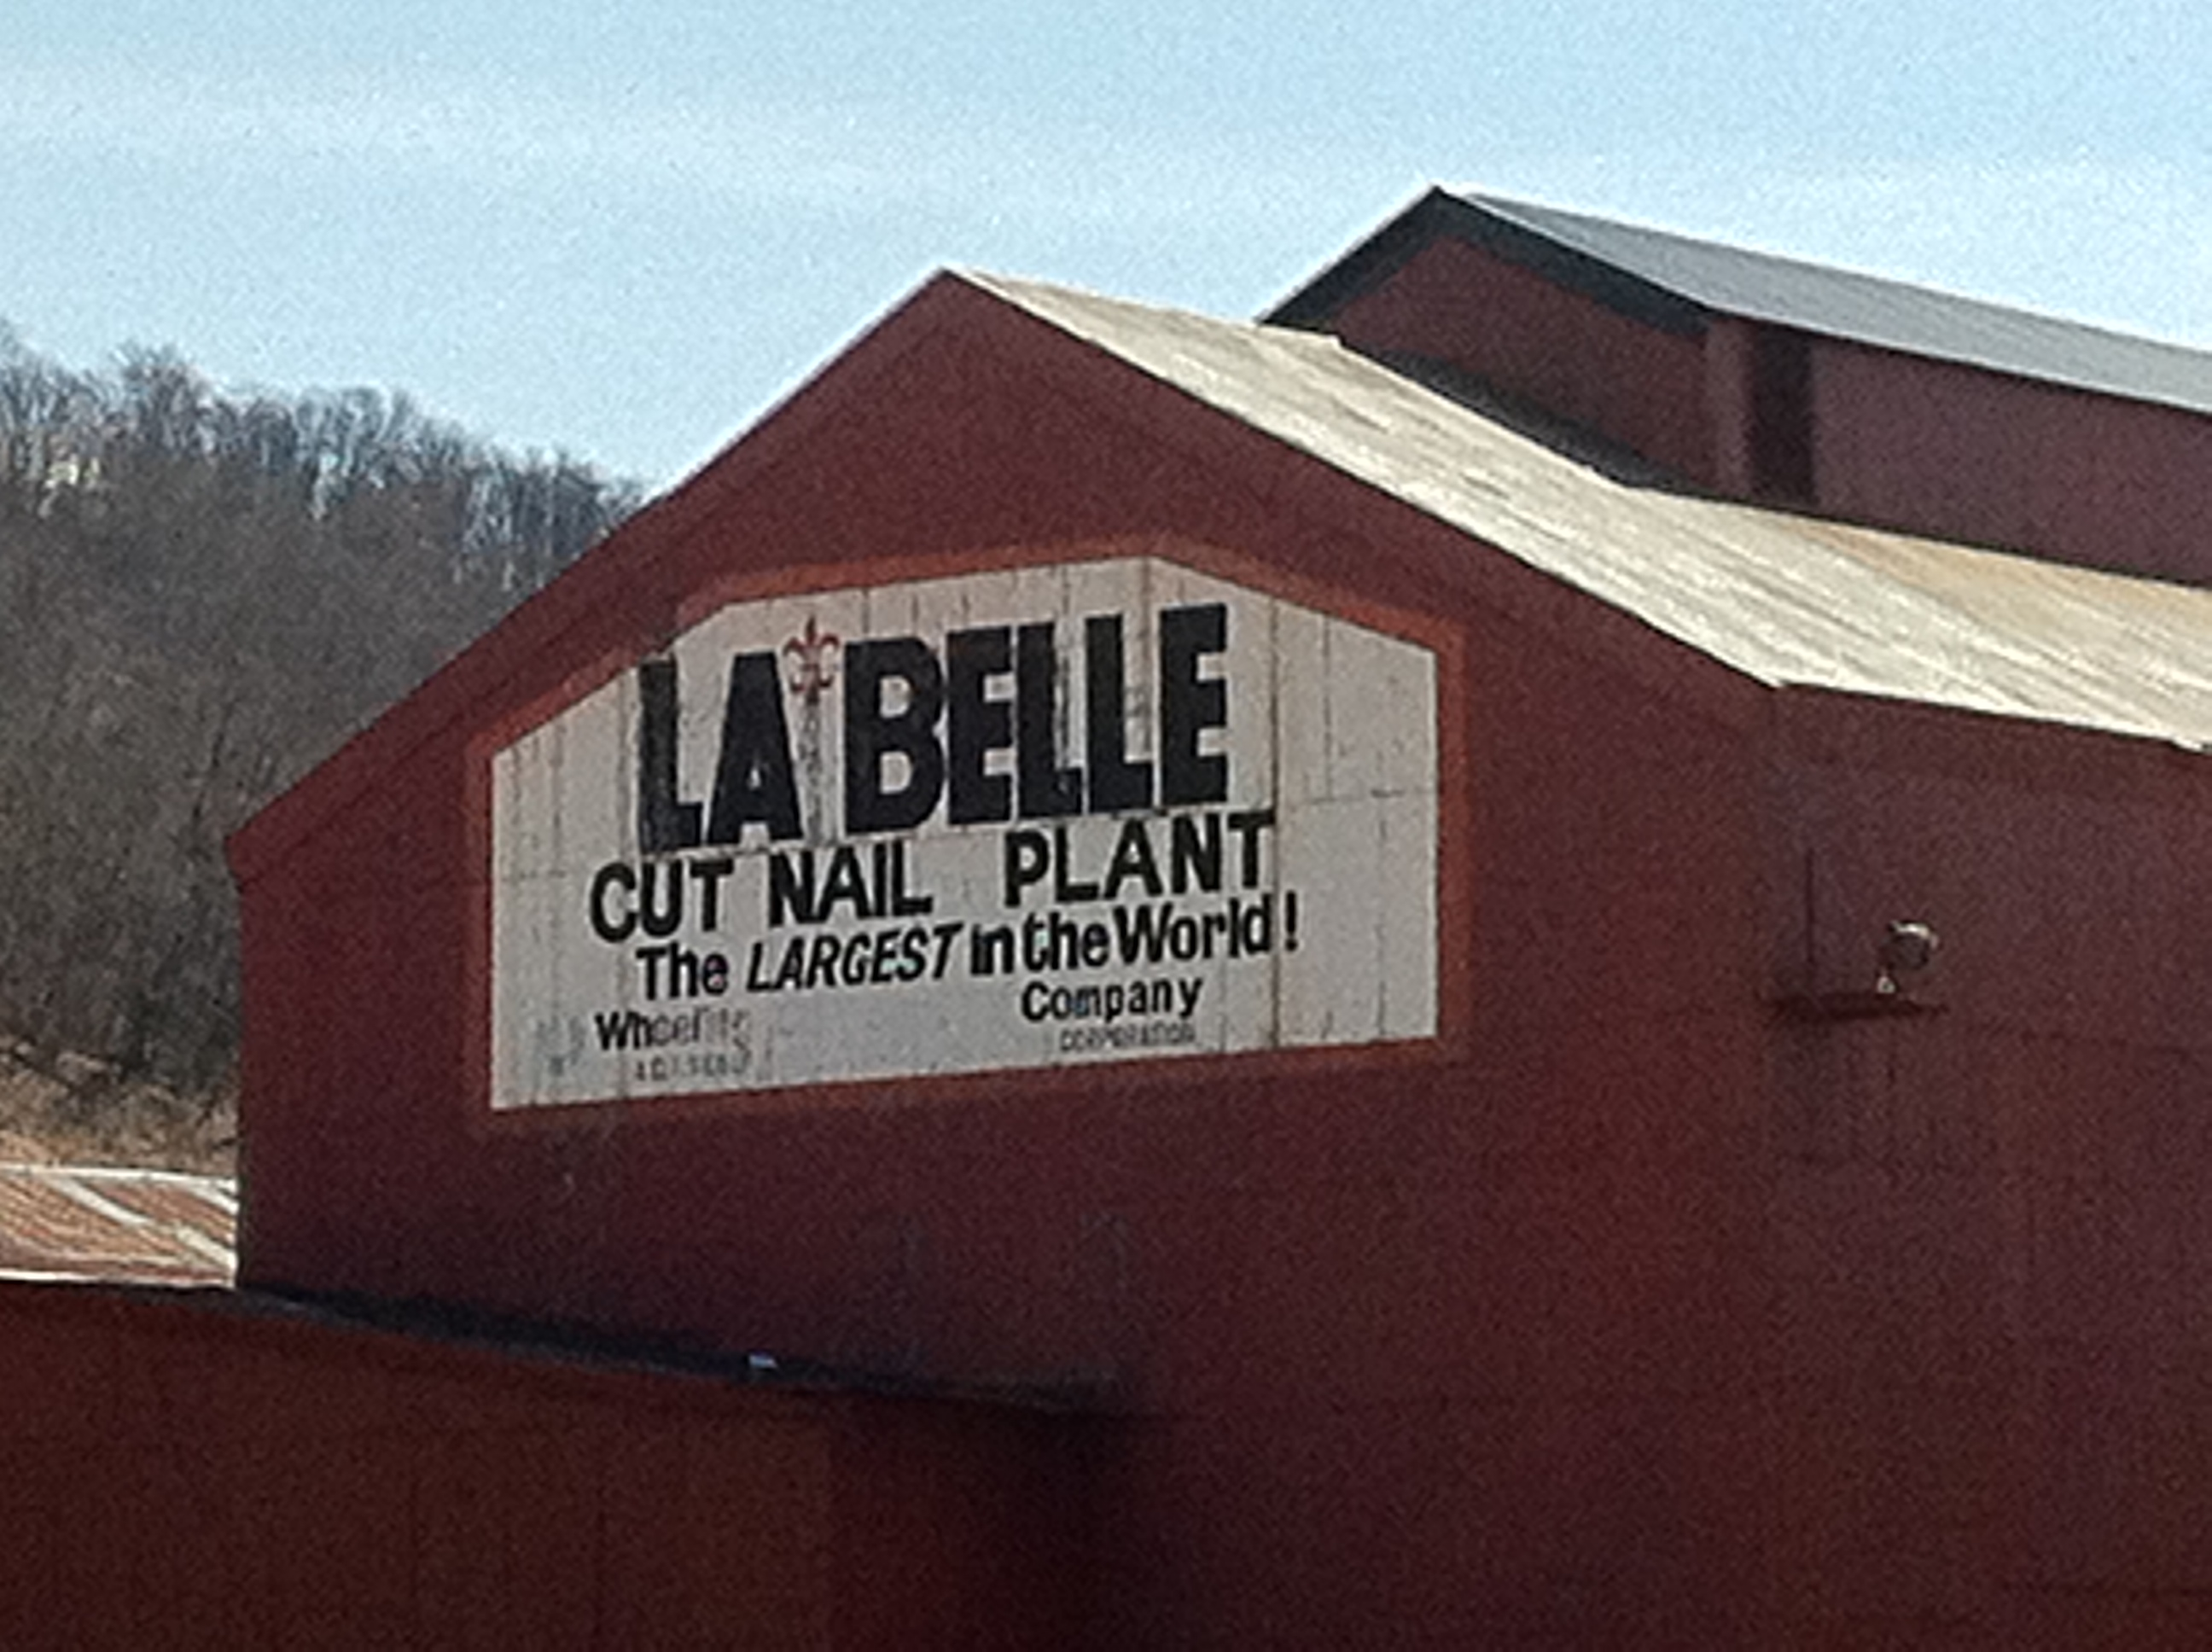 LaBelle Sign Painted on Building